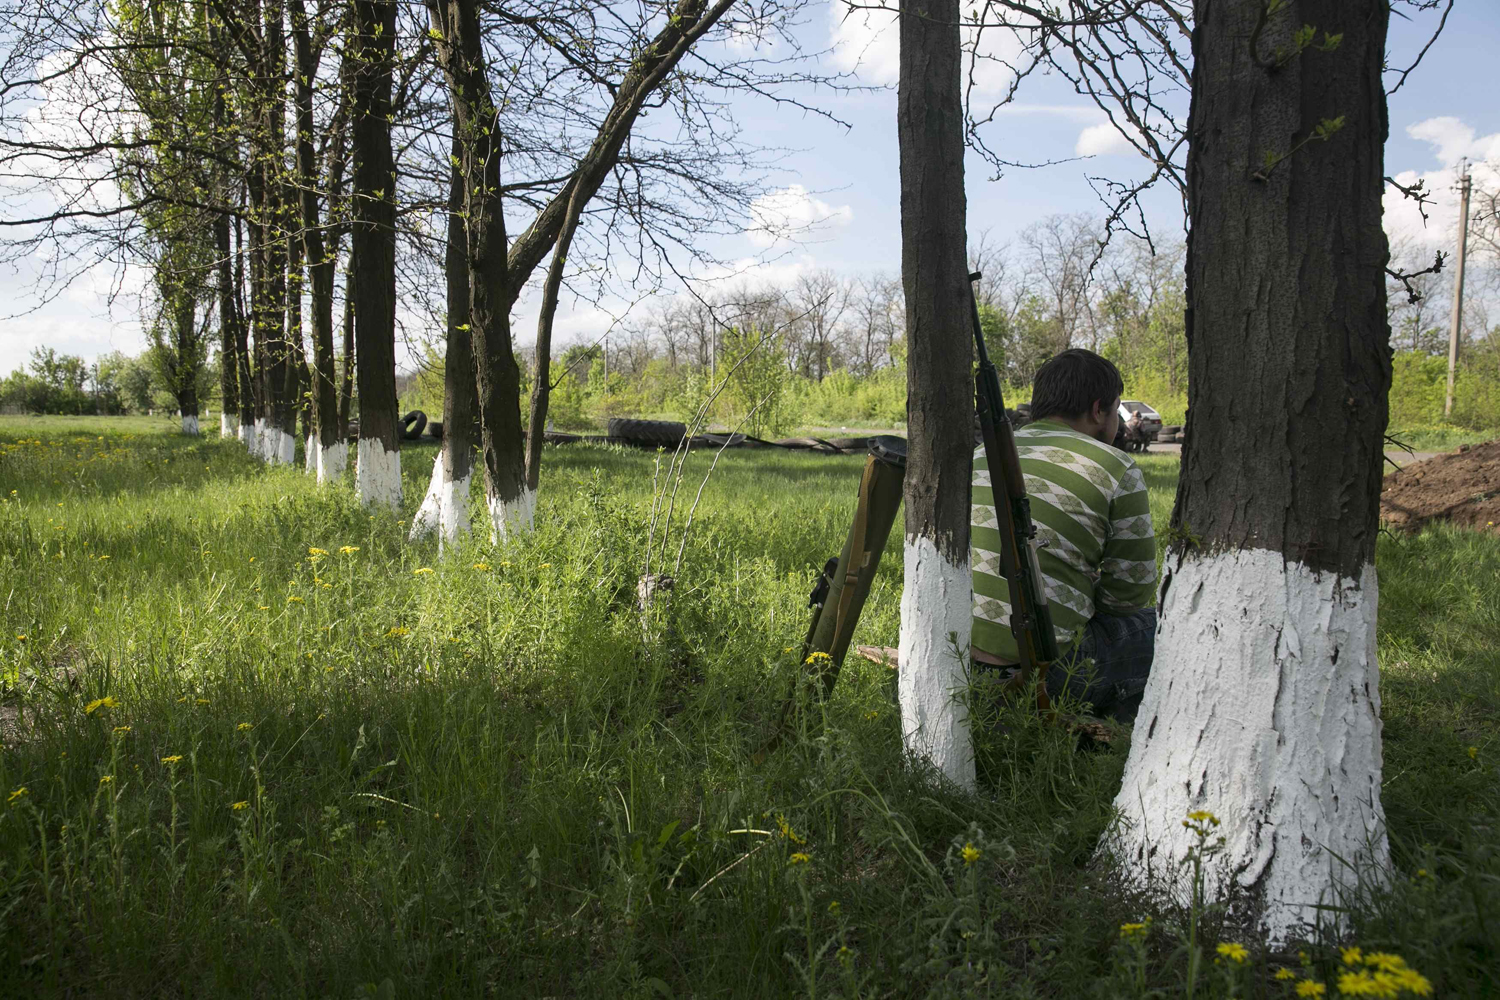 May 1, 2014. A pro-Russian man leans on a tree with a rifle and rocket launcher near him at a checkpoint near the town of Slaviansk, east Ukraine